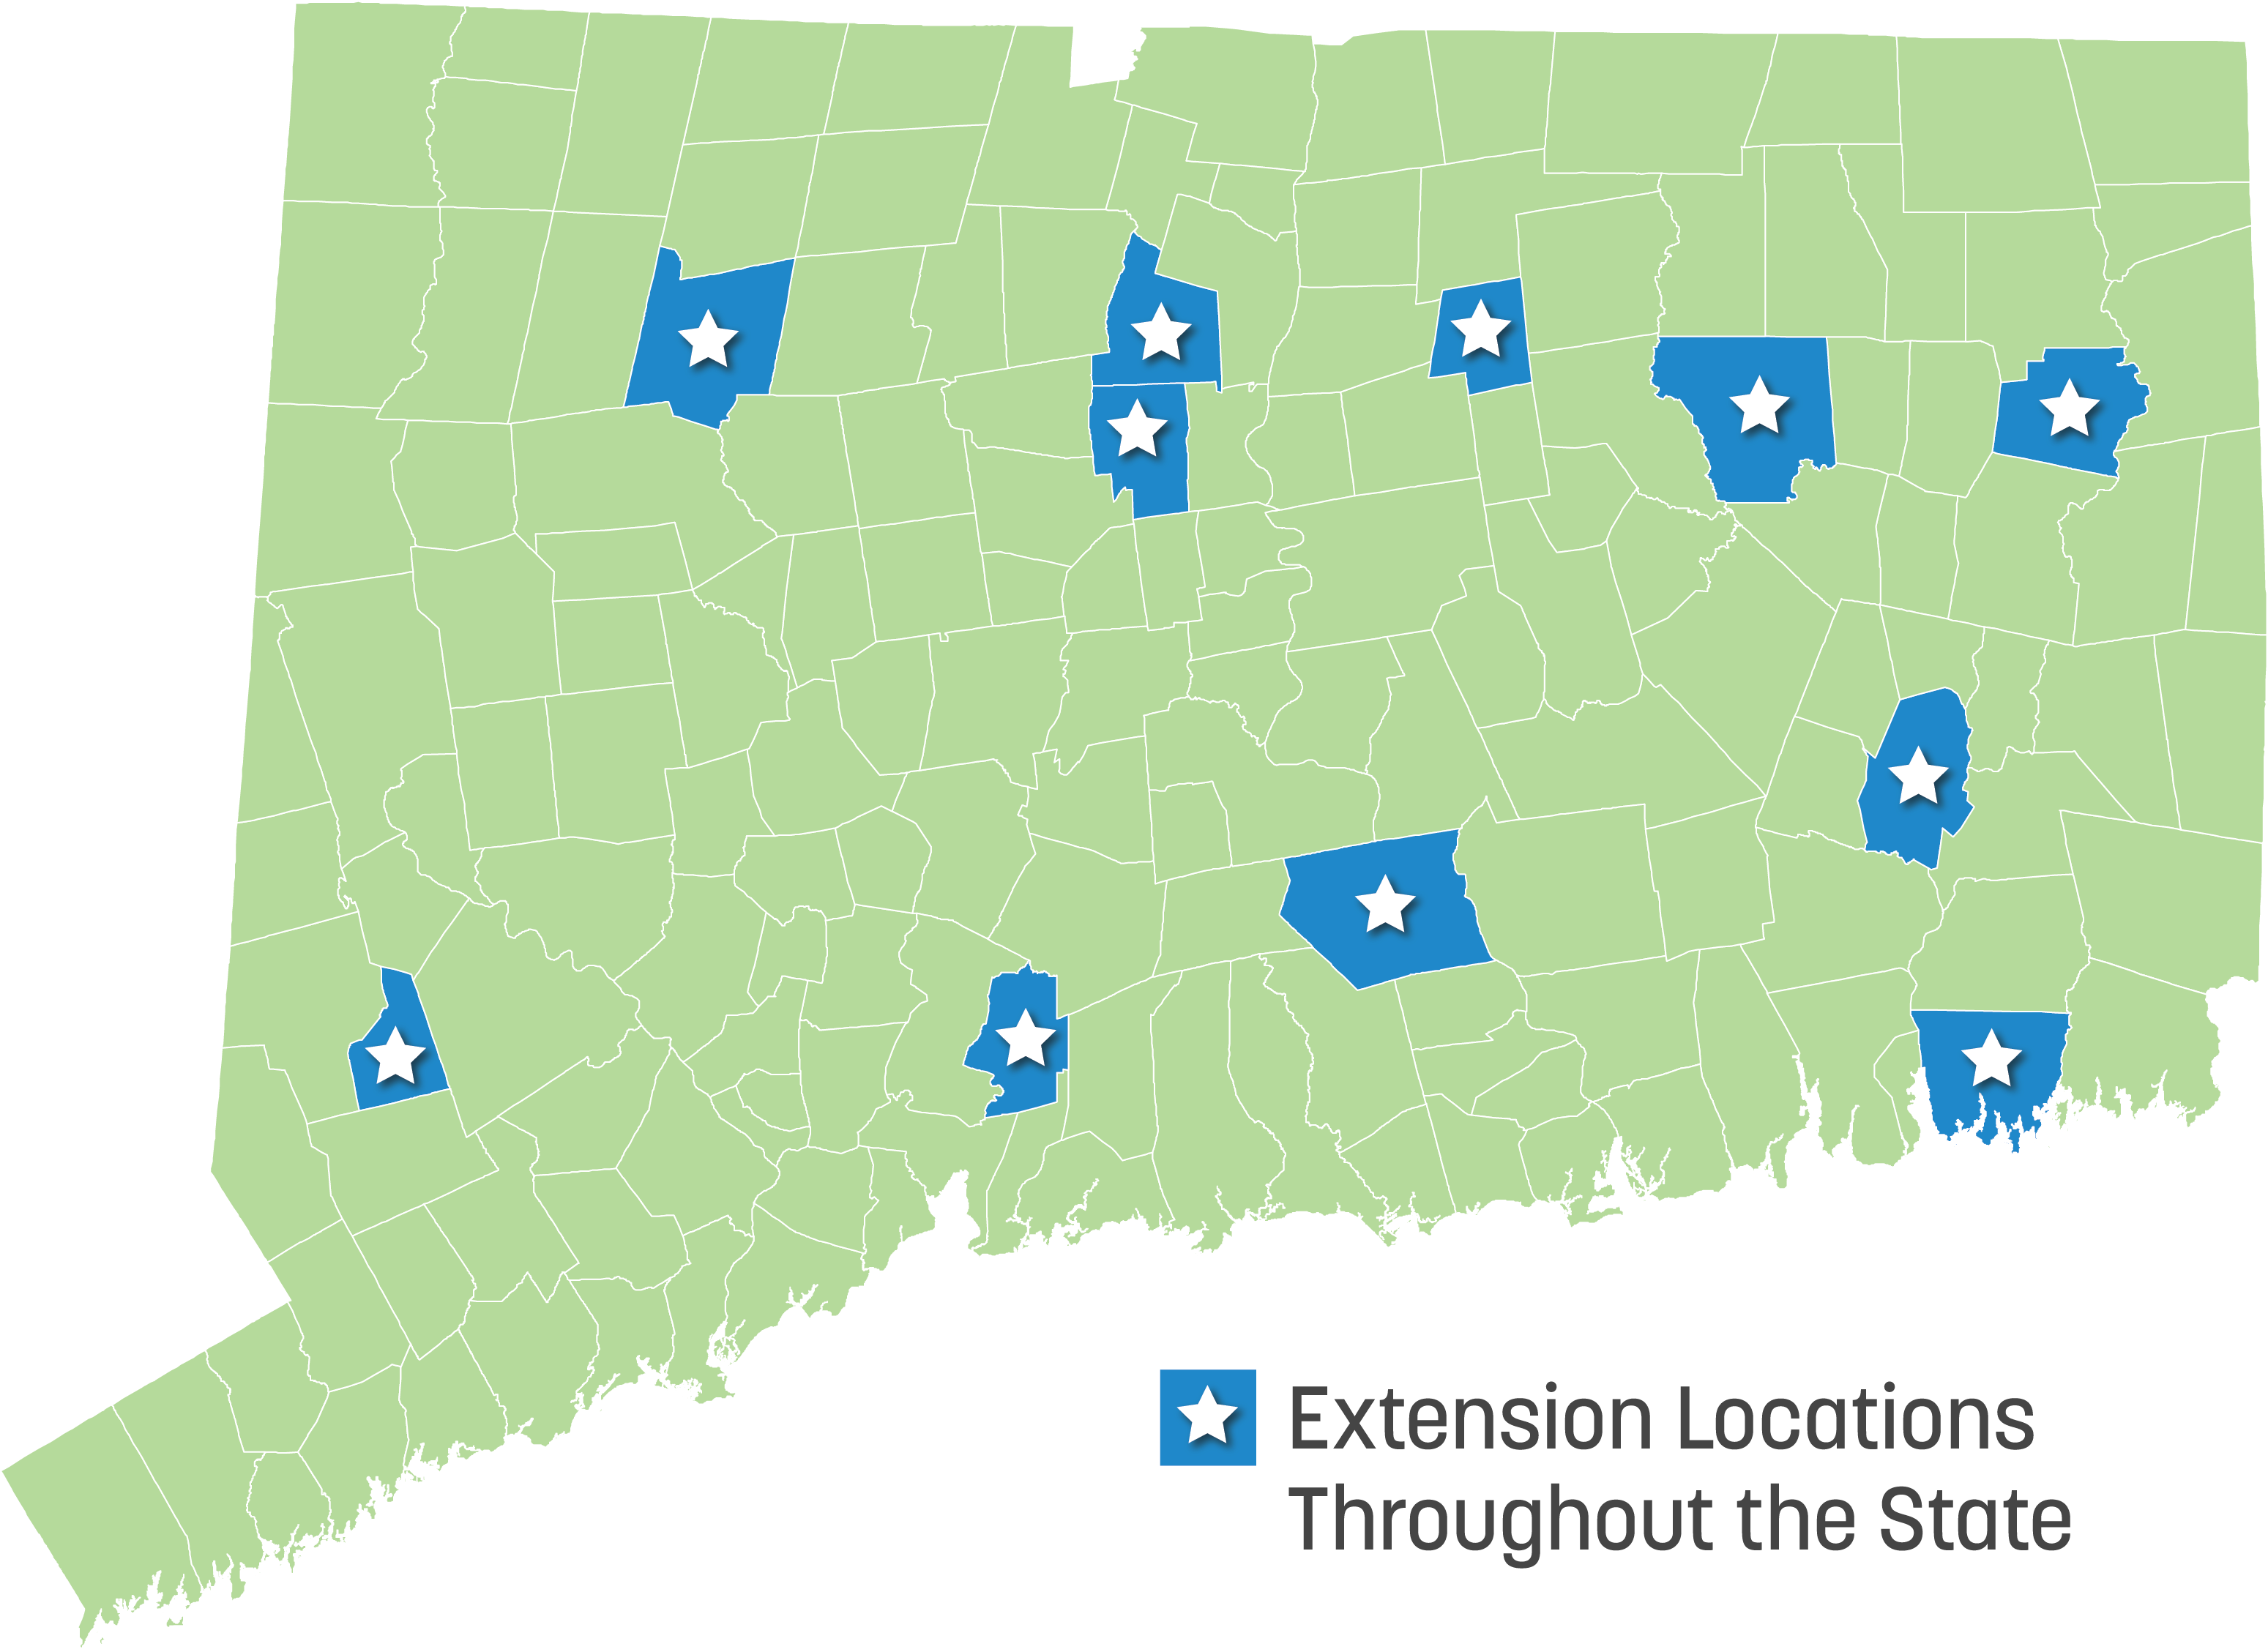 map of Connecticut with star locations of Extension centers